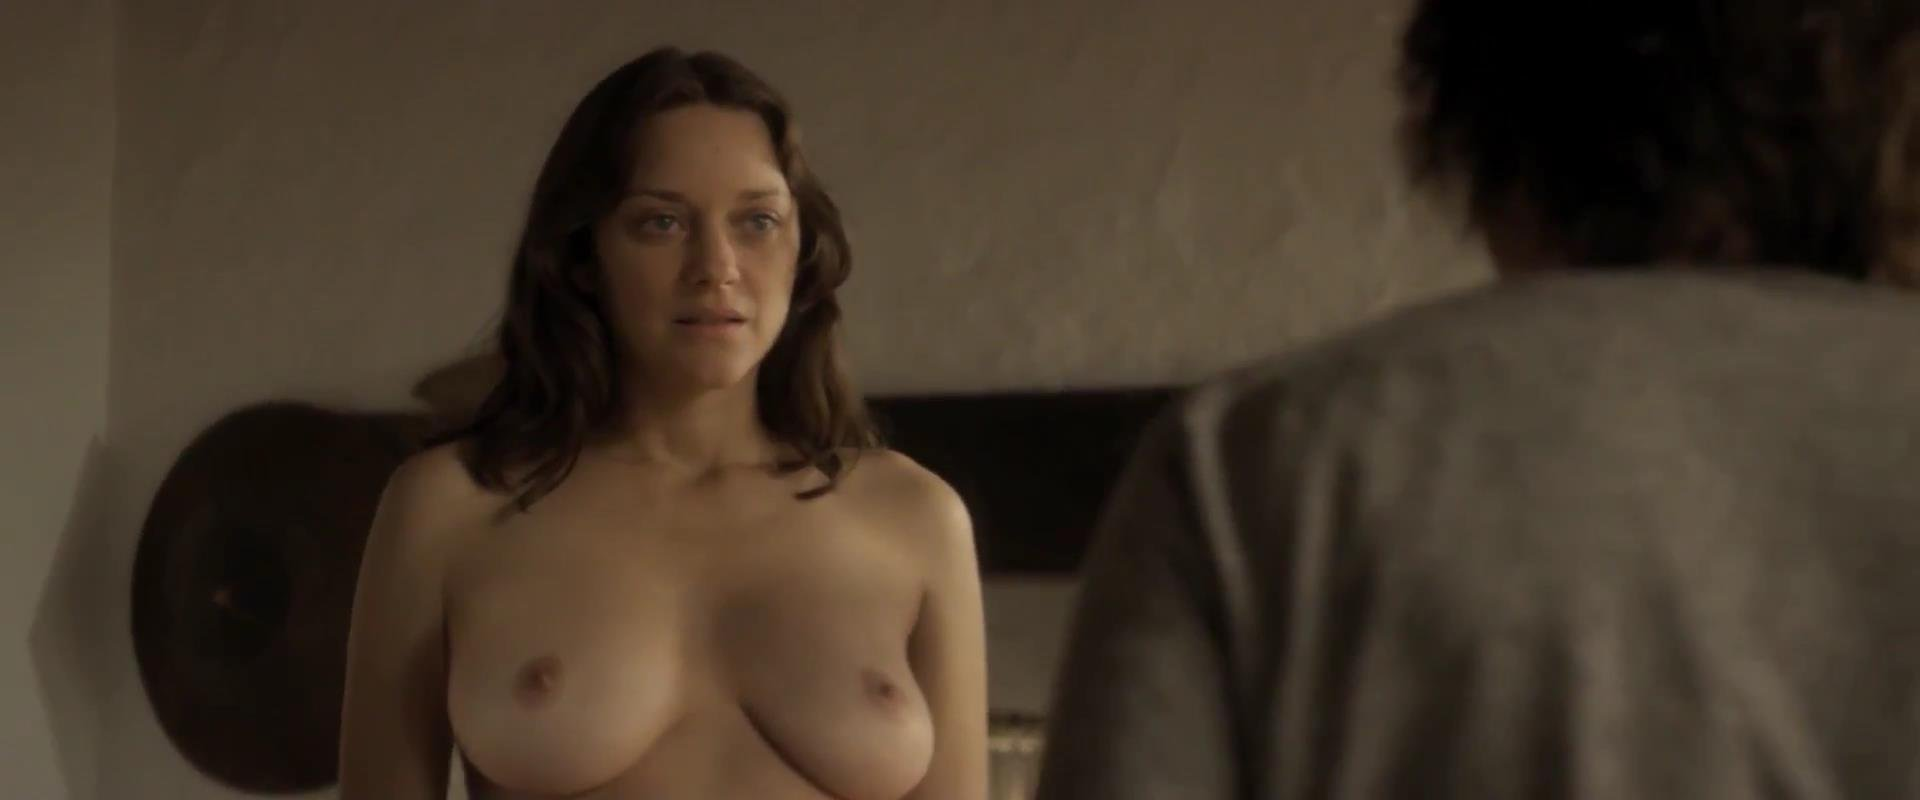 Nudes Marion Cotillard nude (58 photo), Tits, Cleavage, Boobs, braless 2019